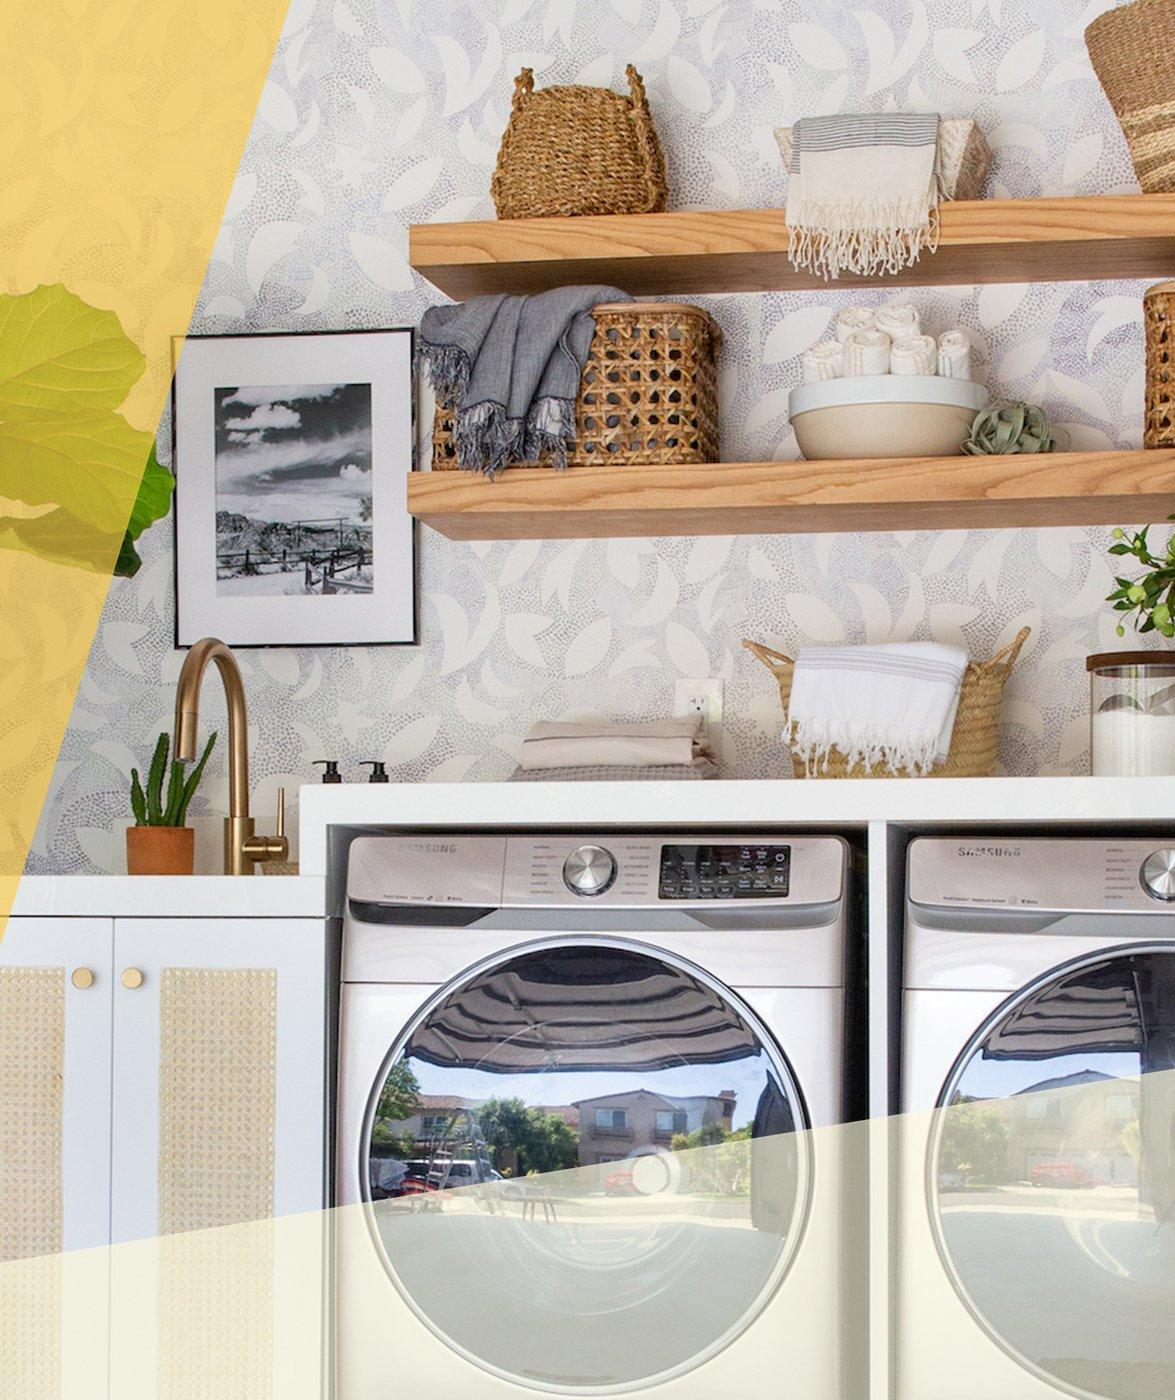 25 Design Ideas to Steal From a Gorgeous Garage-Turned-Laundry Room